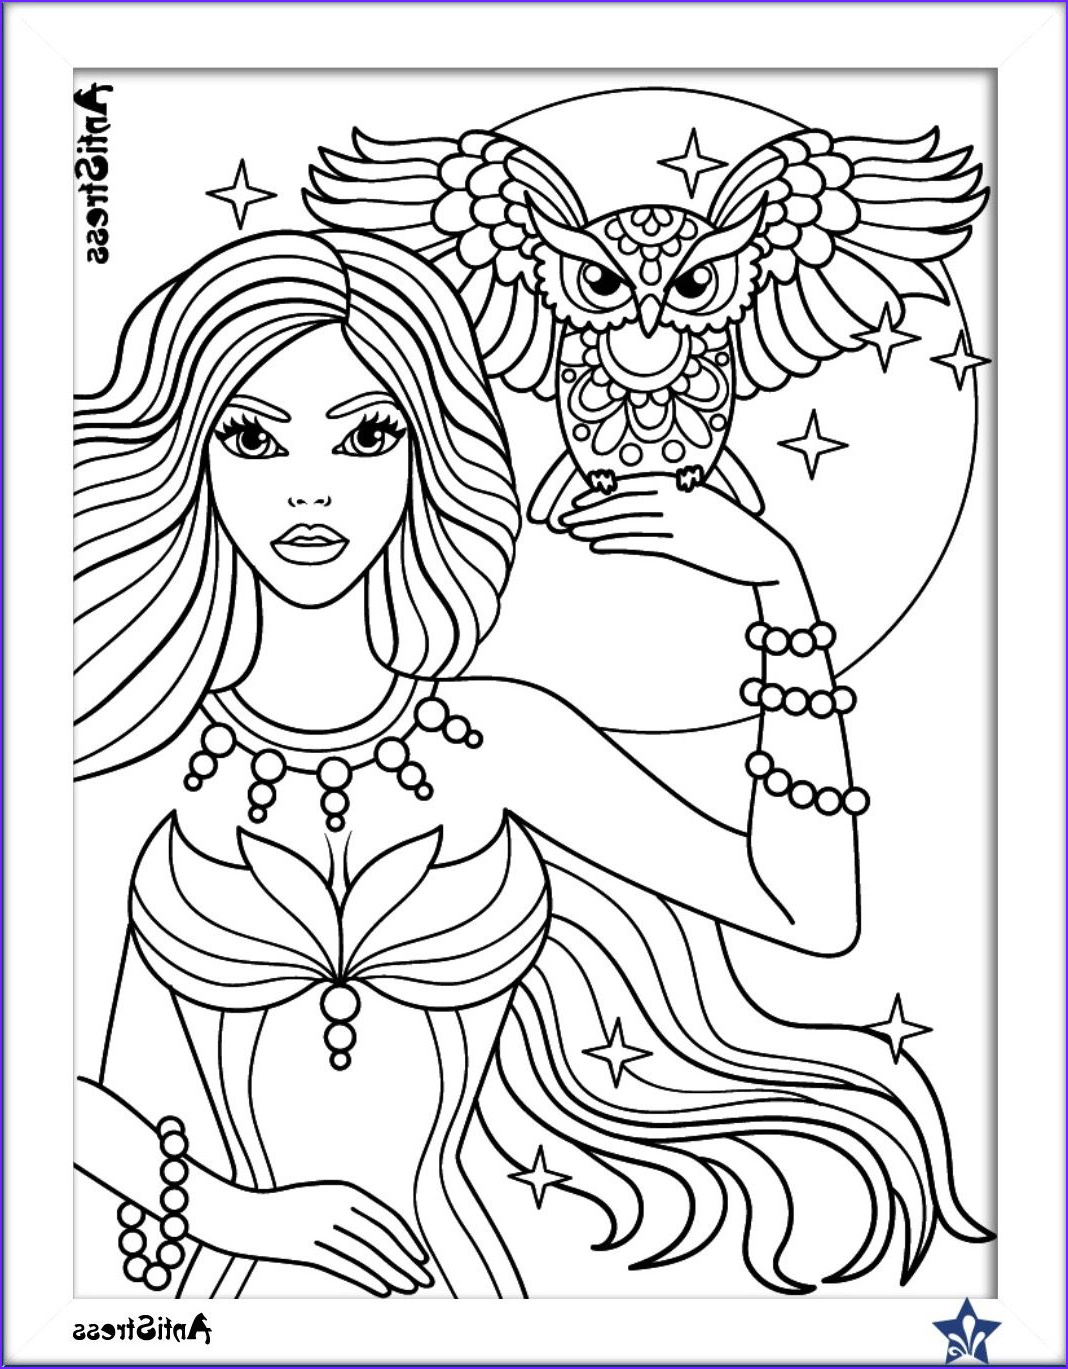 Coloring Sheet for Girls Awesome Gallery Owl and Girl Coloring Page